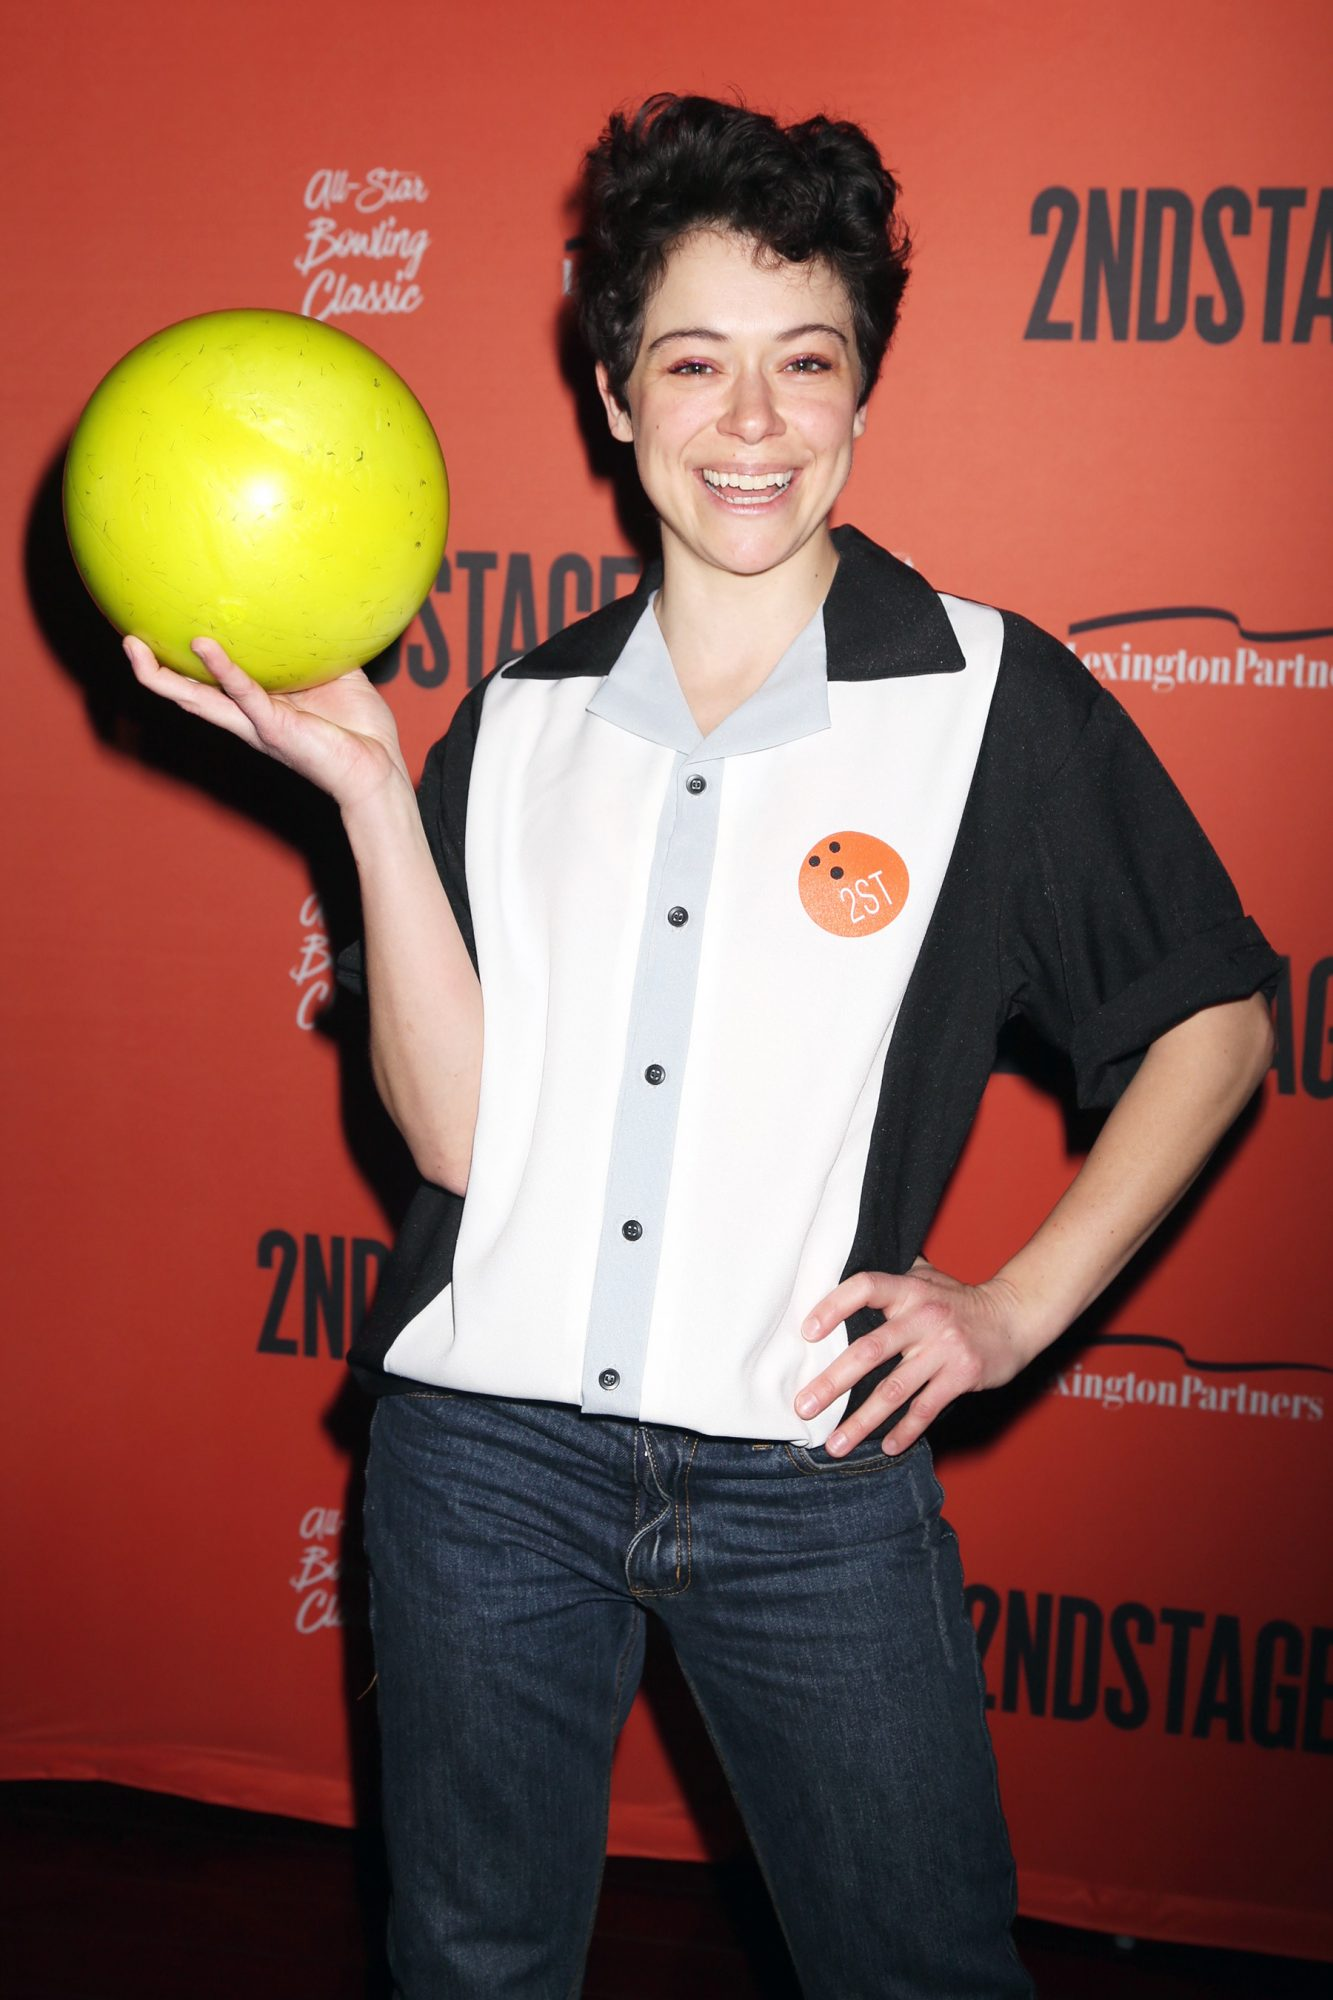 32nd Annual Second Stage Theater All Star Bowling Classic Fundraiser